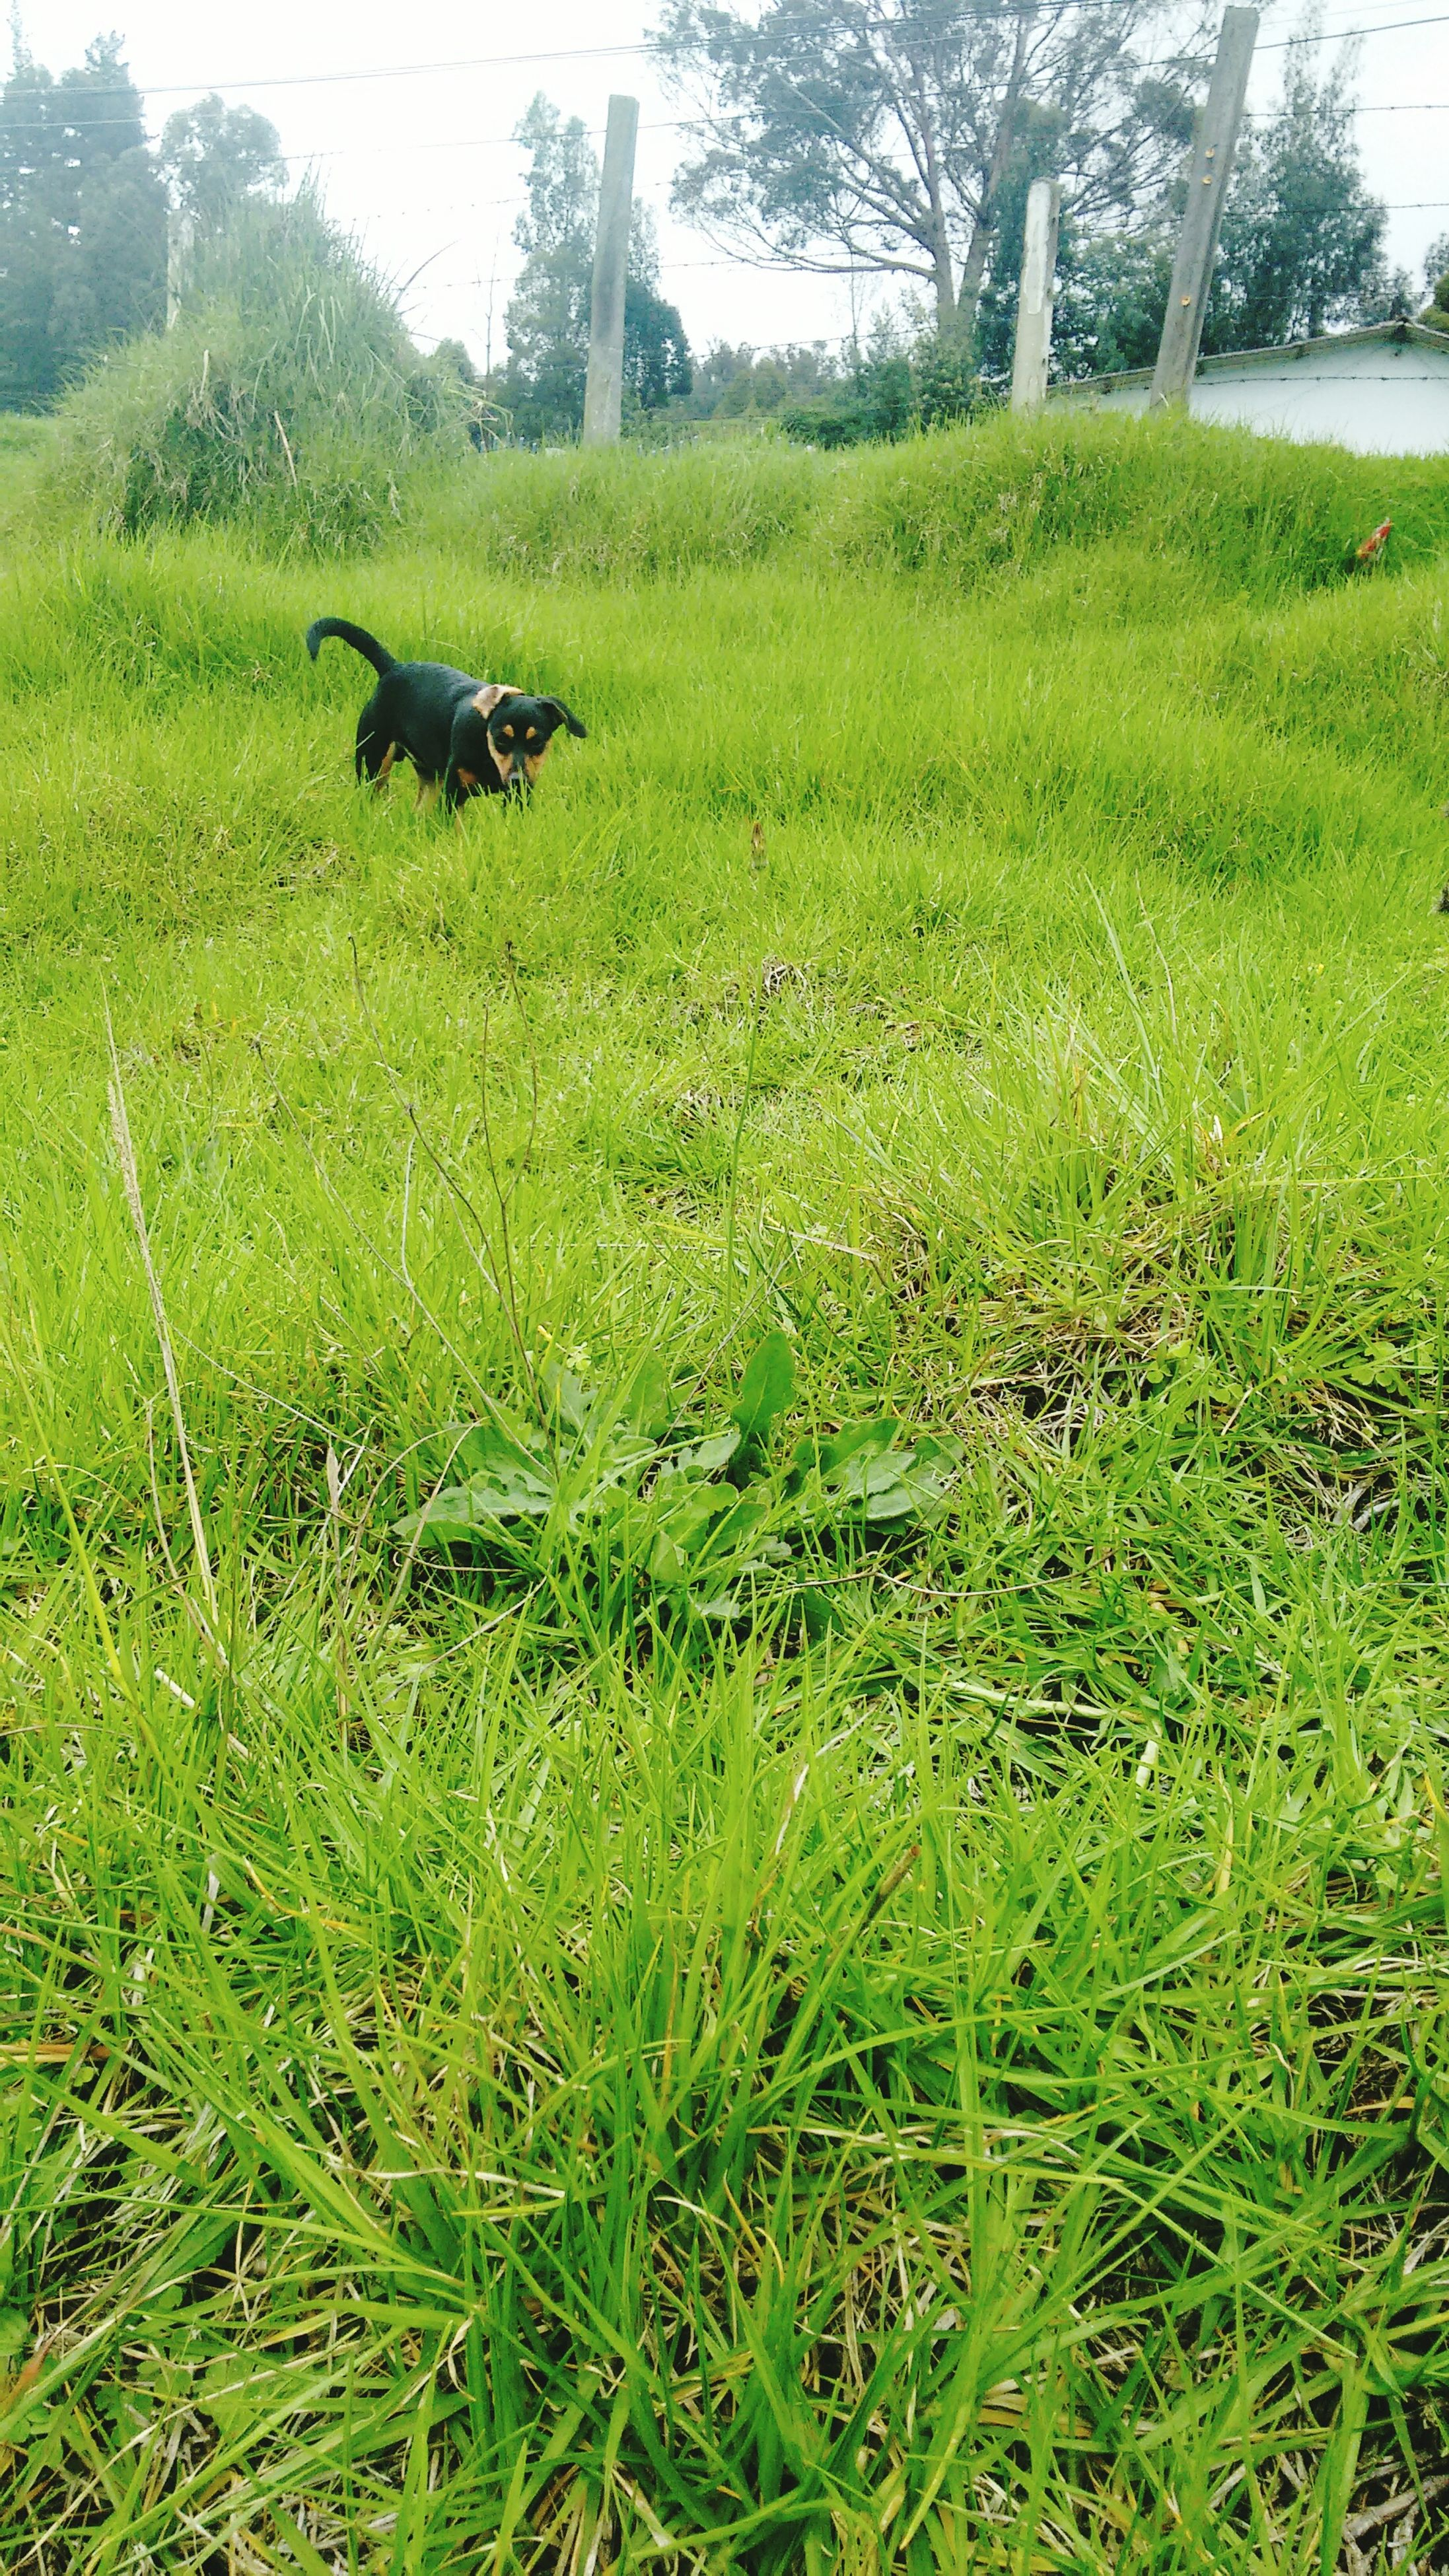 animal themes, grass, mammal, green color, domestic animals, field, grassy, animals in the wild, wildlife, one animal, nature, landscape, growth, two animals, grazing, dog, pets, tree, day, beauty in nature